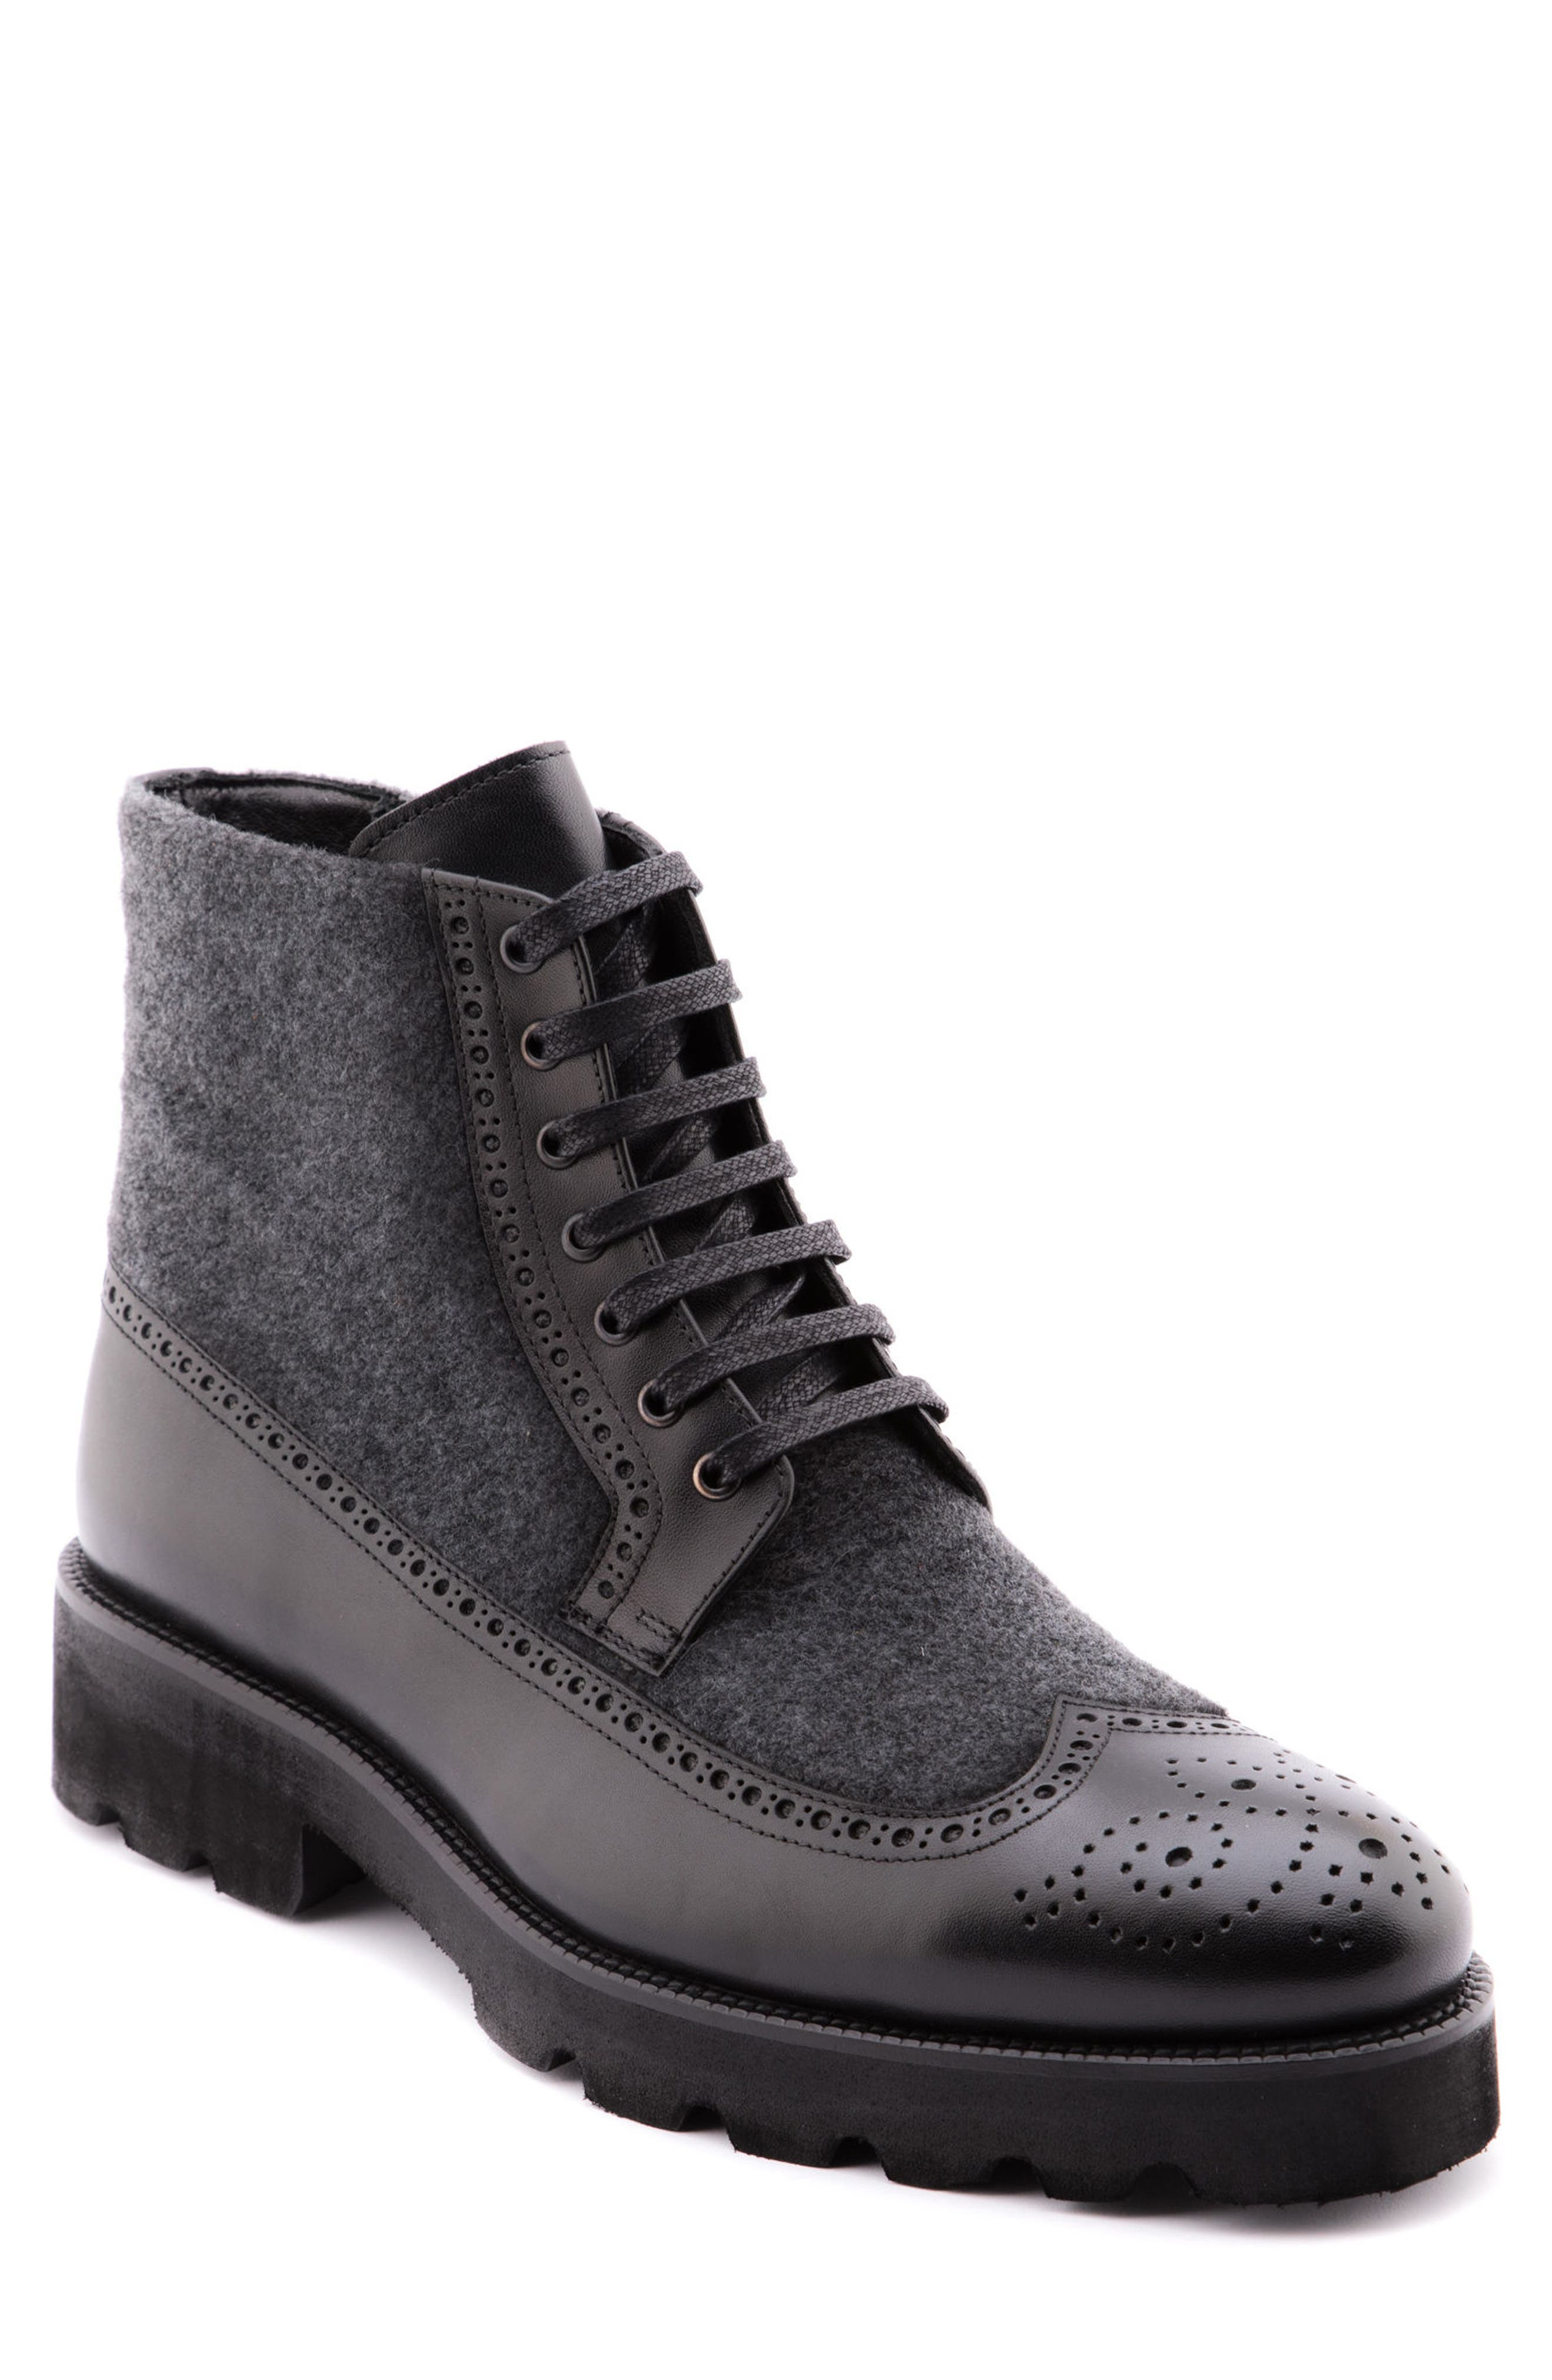 Jared Lang Men's Wayne Wingtip Boot IILfBQyXx6